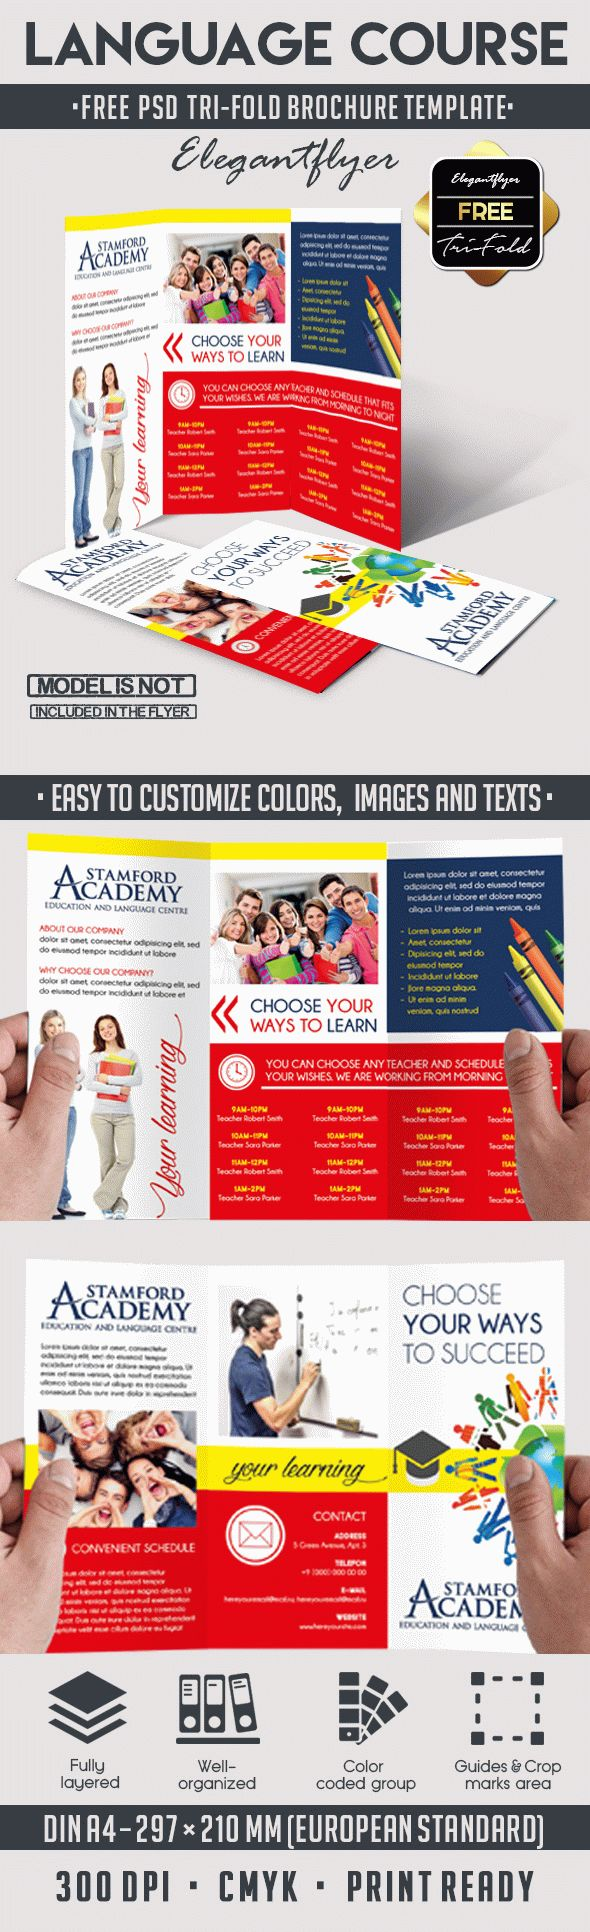 Languages Course – Free Tri-Fold PSD Brochure Template